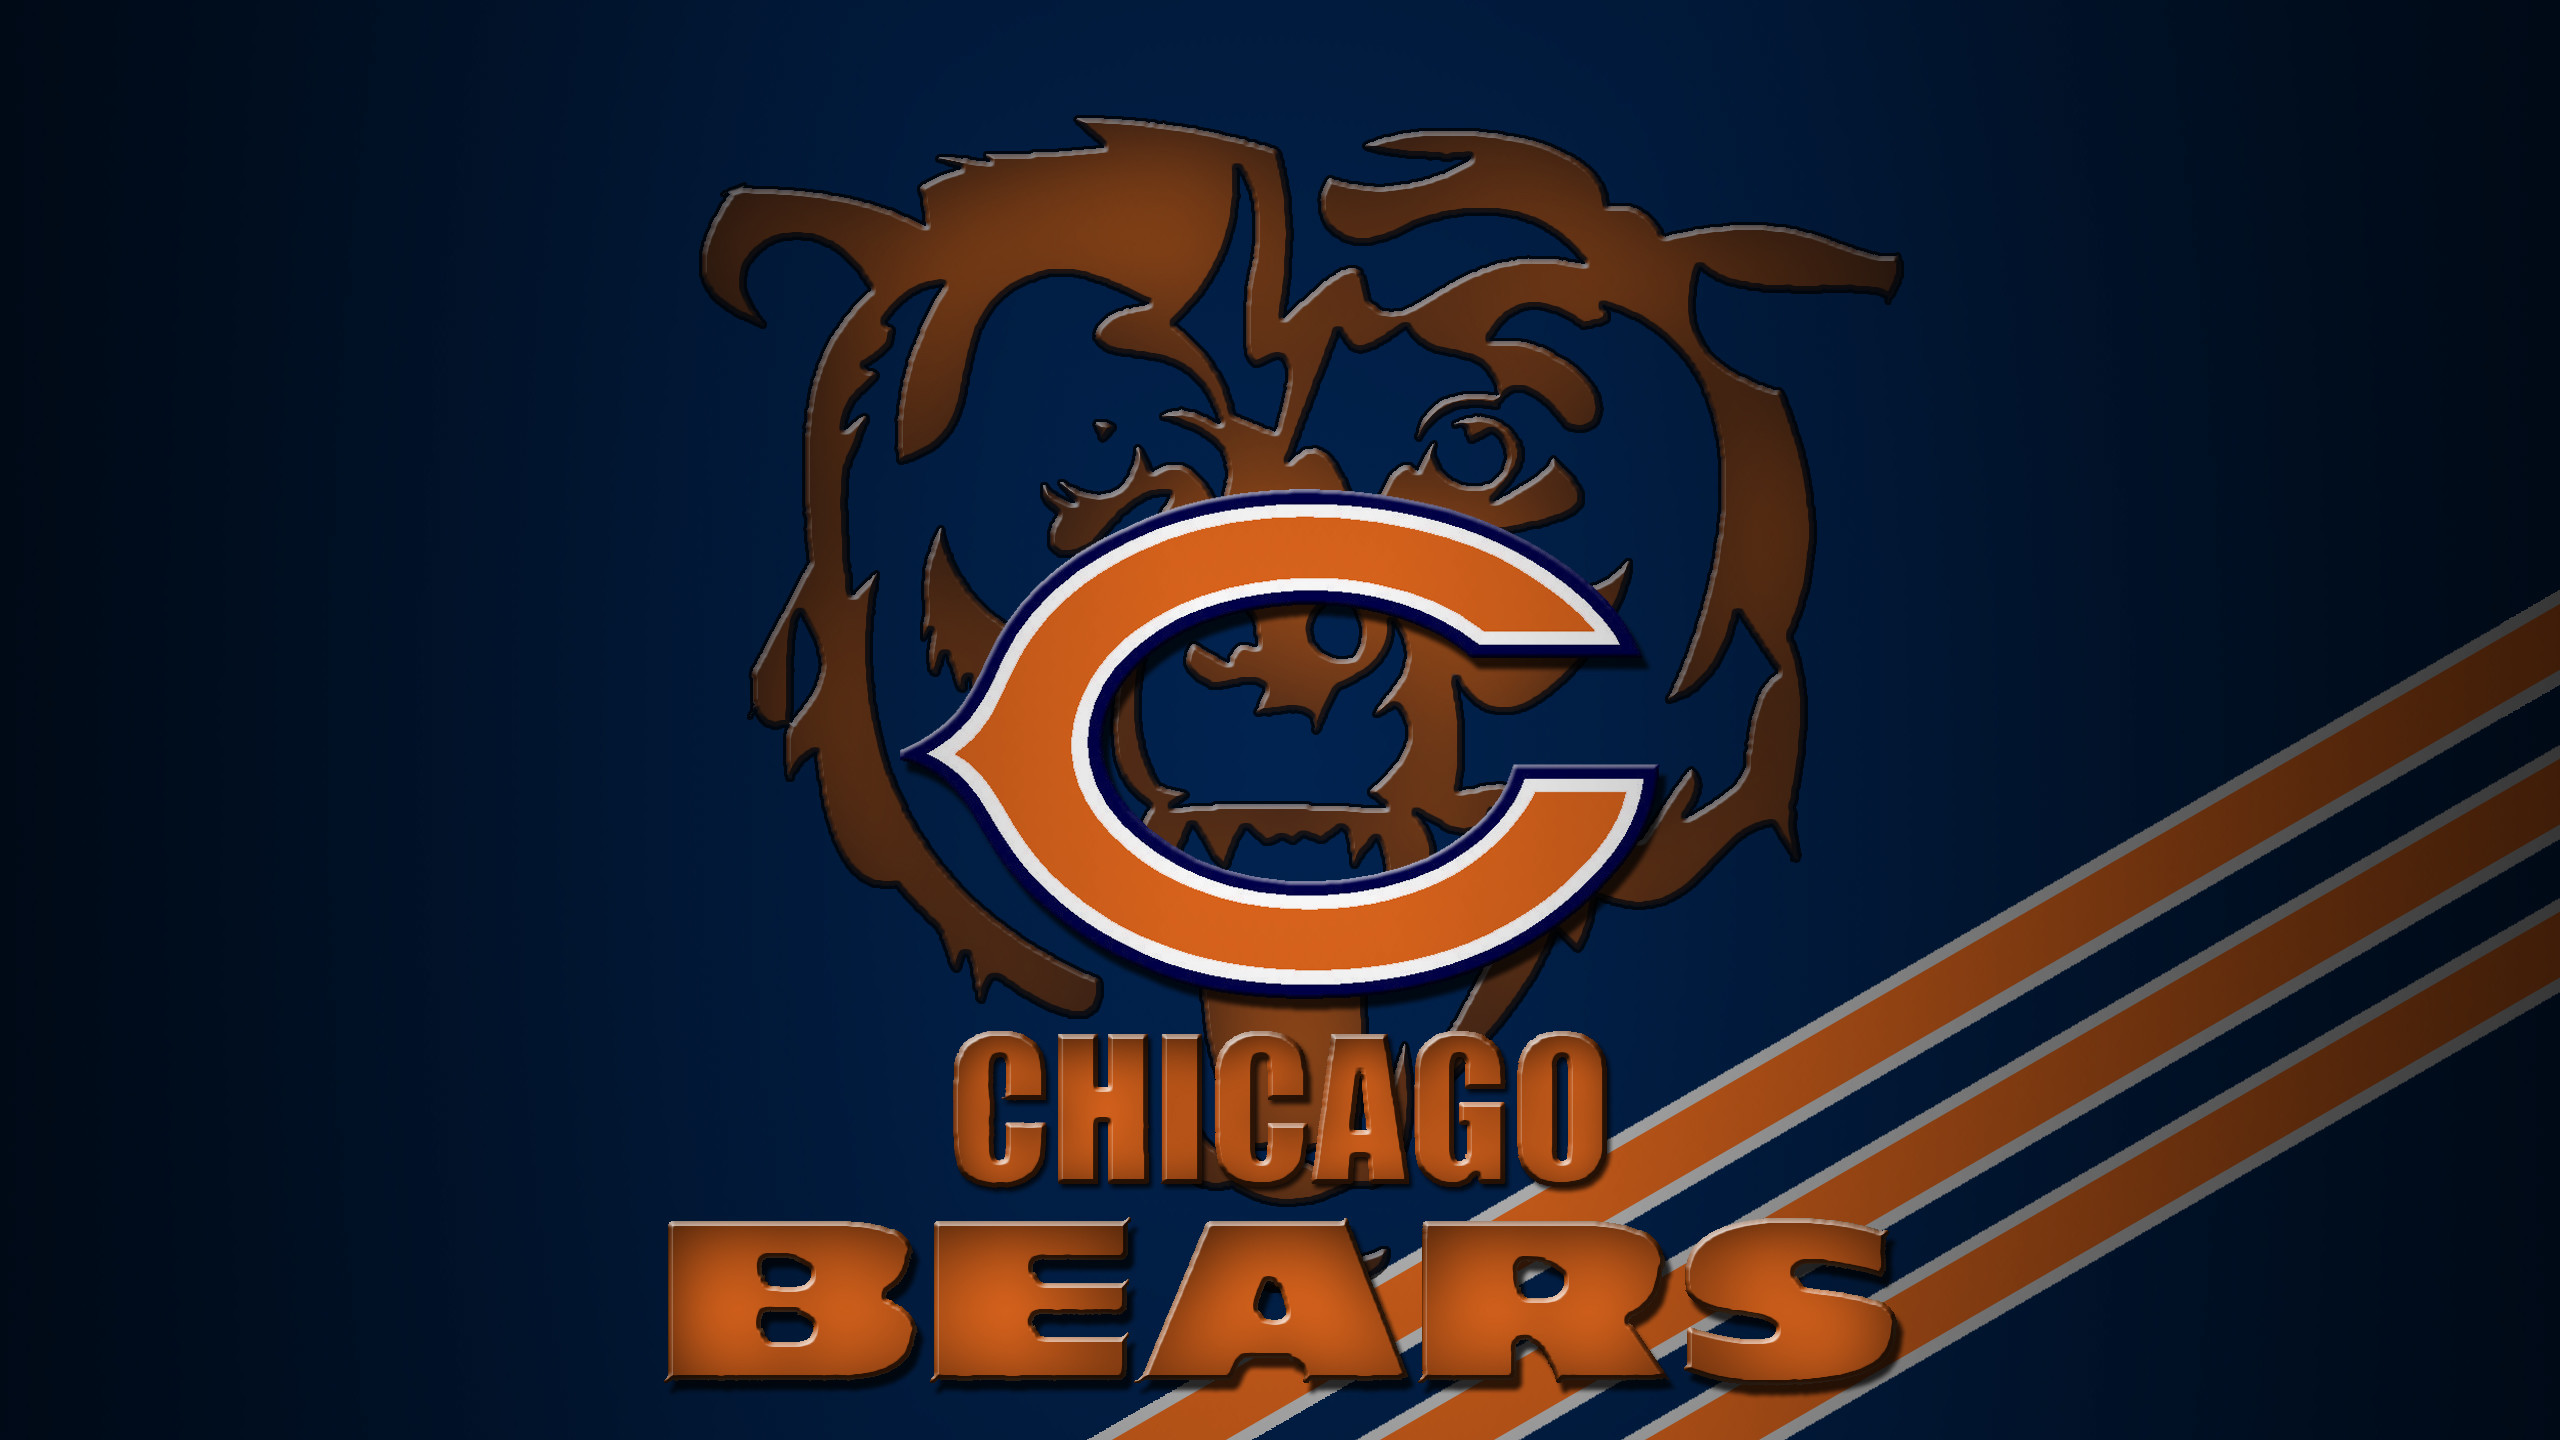 Chicago Bears Wallpapers (78+ images)